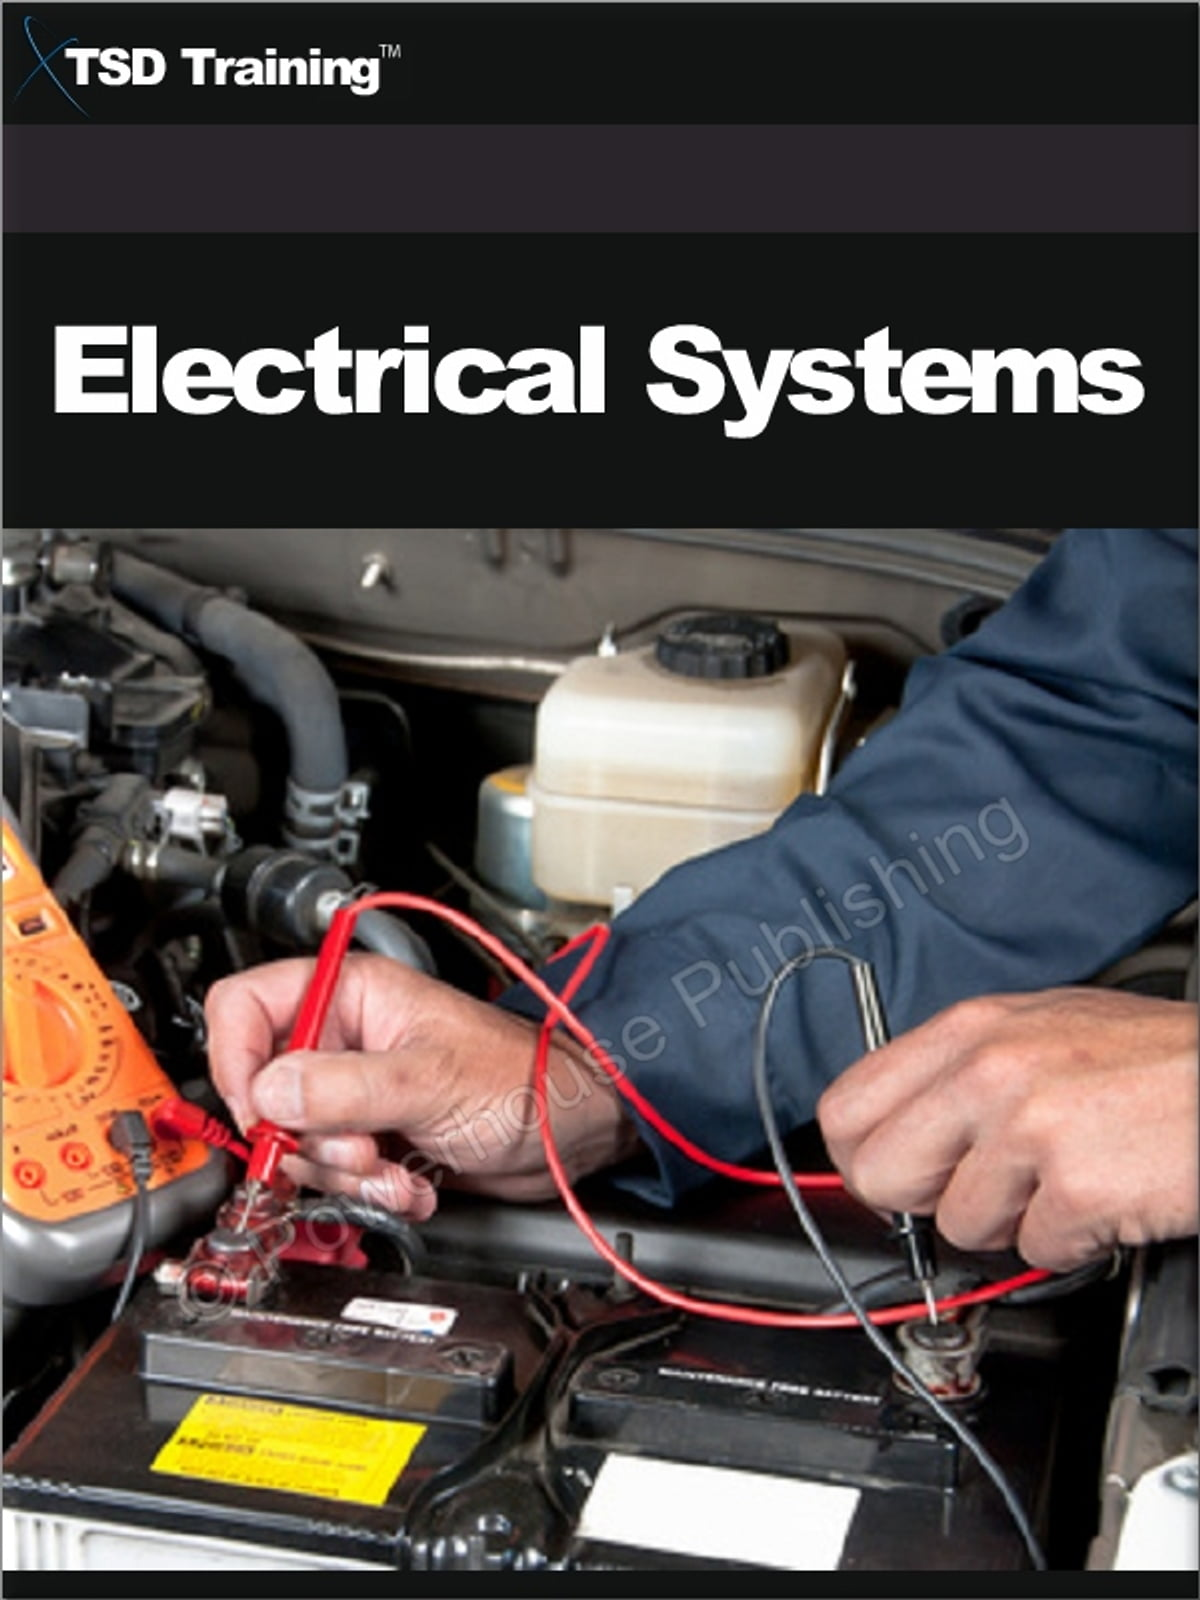 Awesome Auto Mechanic Electrical Systems Mechanics And Hydraulics Ebook Wiring Cloud Hisonuggs Outletorg